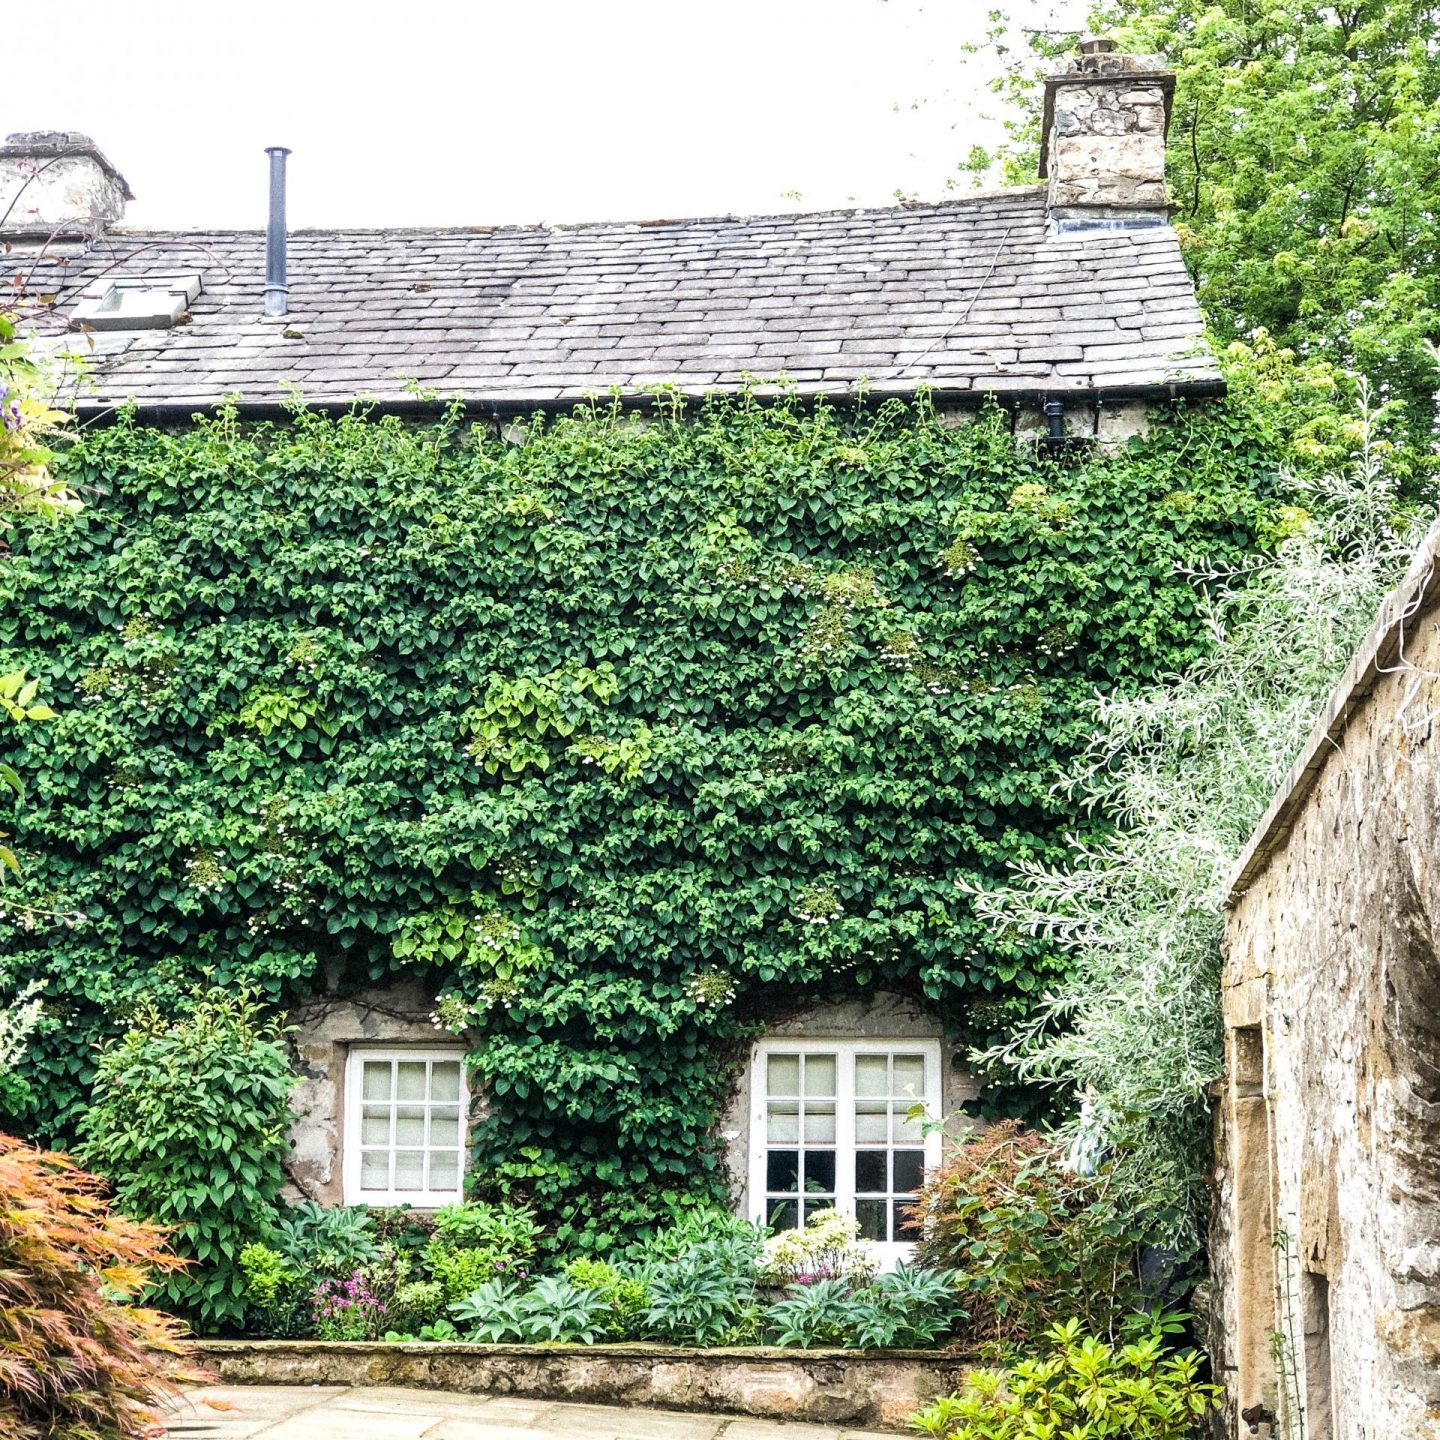 Hipping Hall, Kirkby Lonsdale Luxury Hotel Review - Rachel Nicole UK Travel Blogger